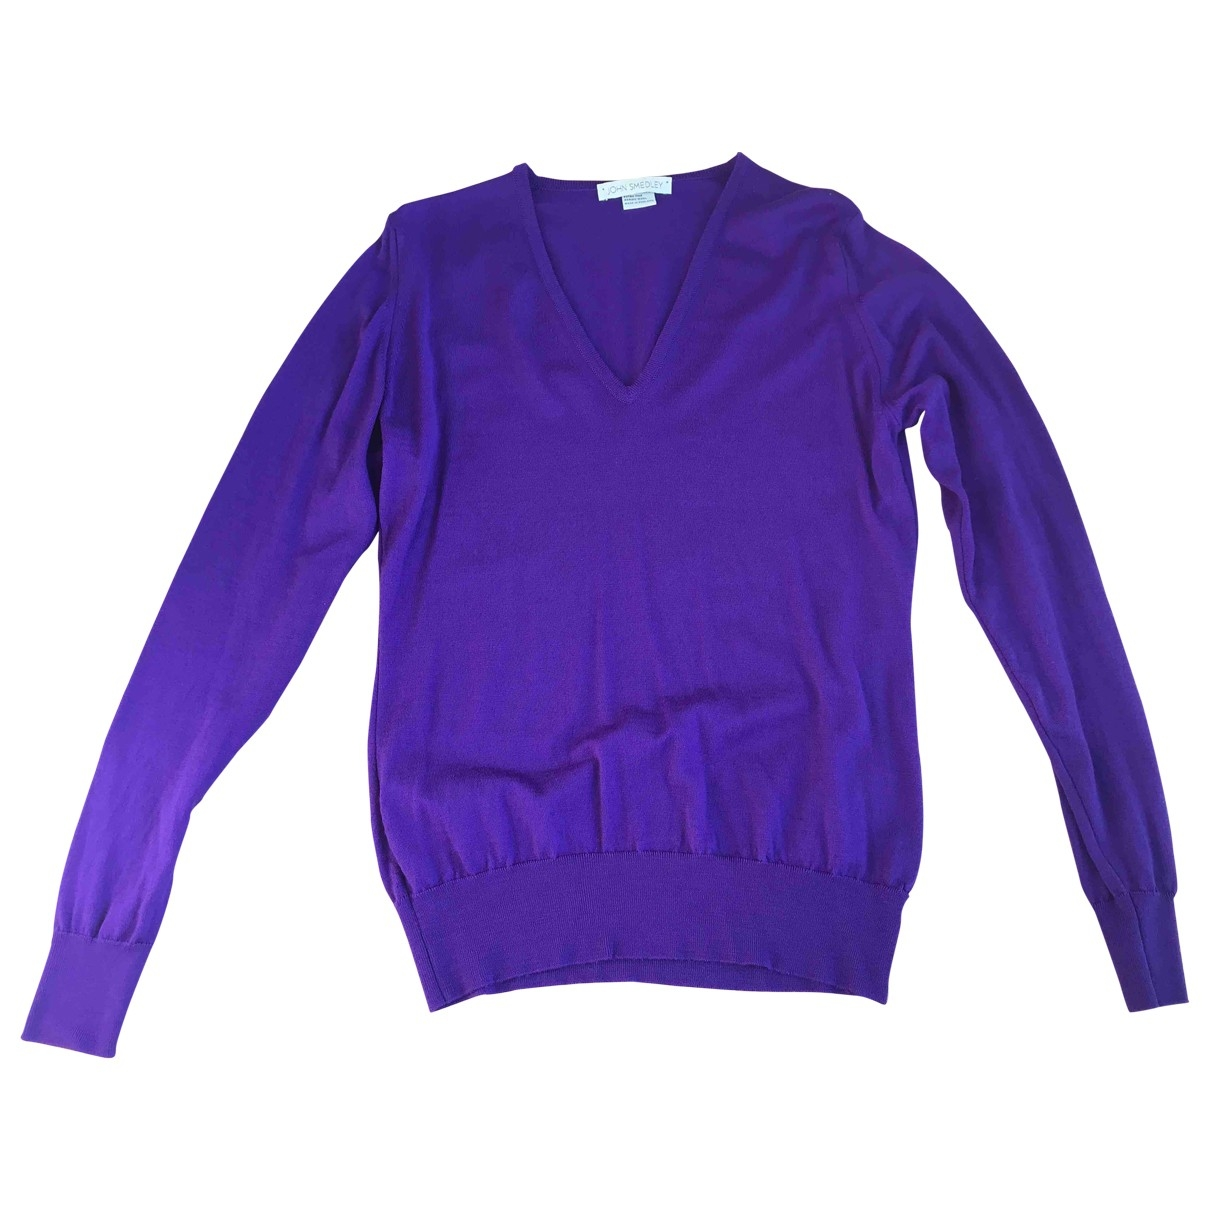 John Smedley \N Pullover in  Lila Wolle